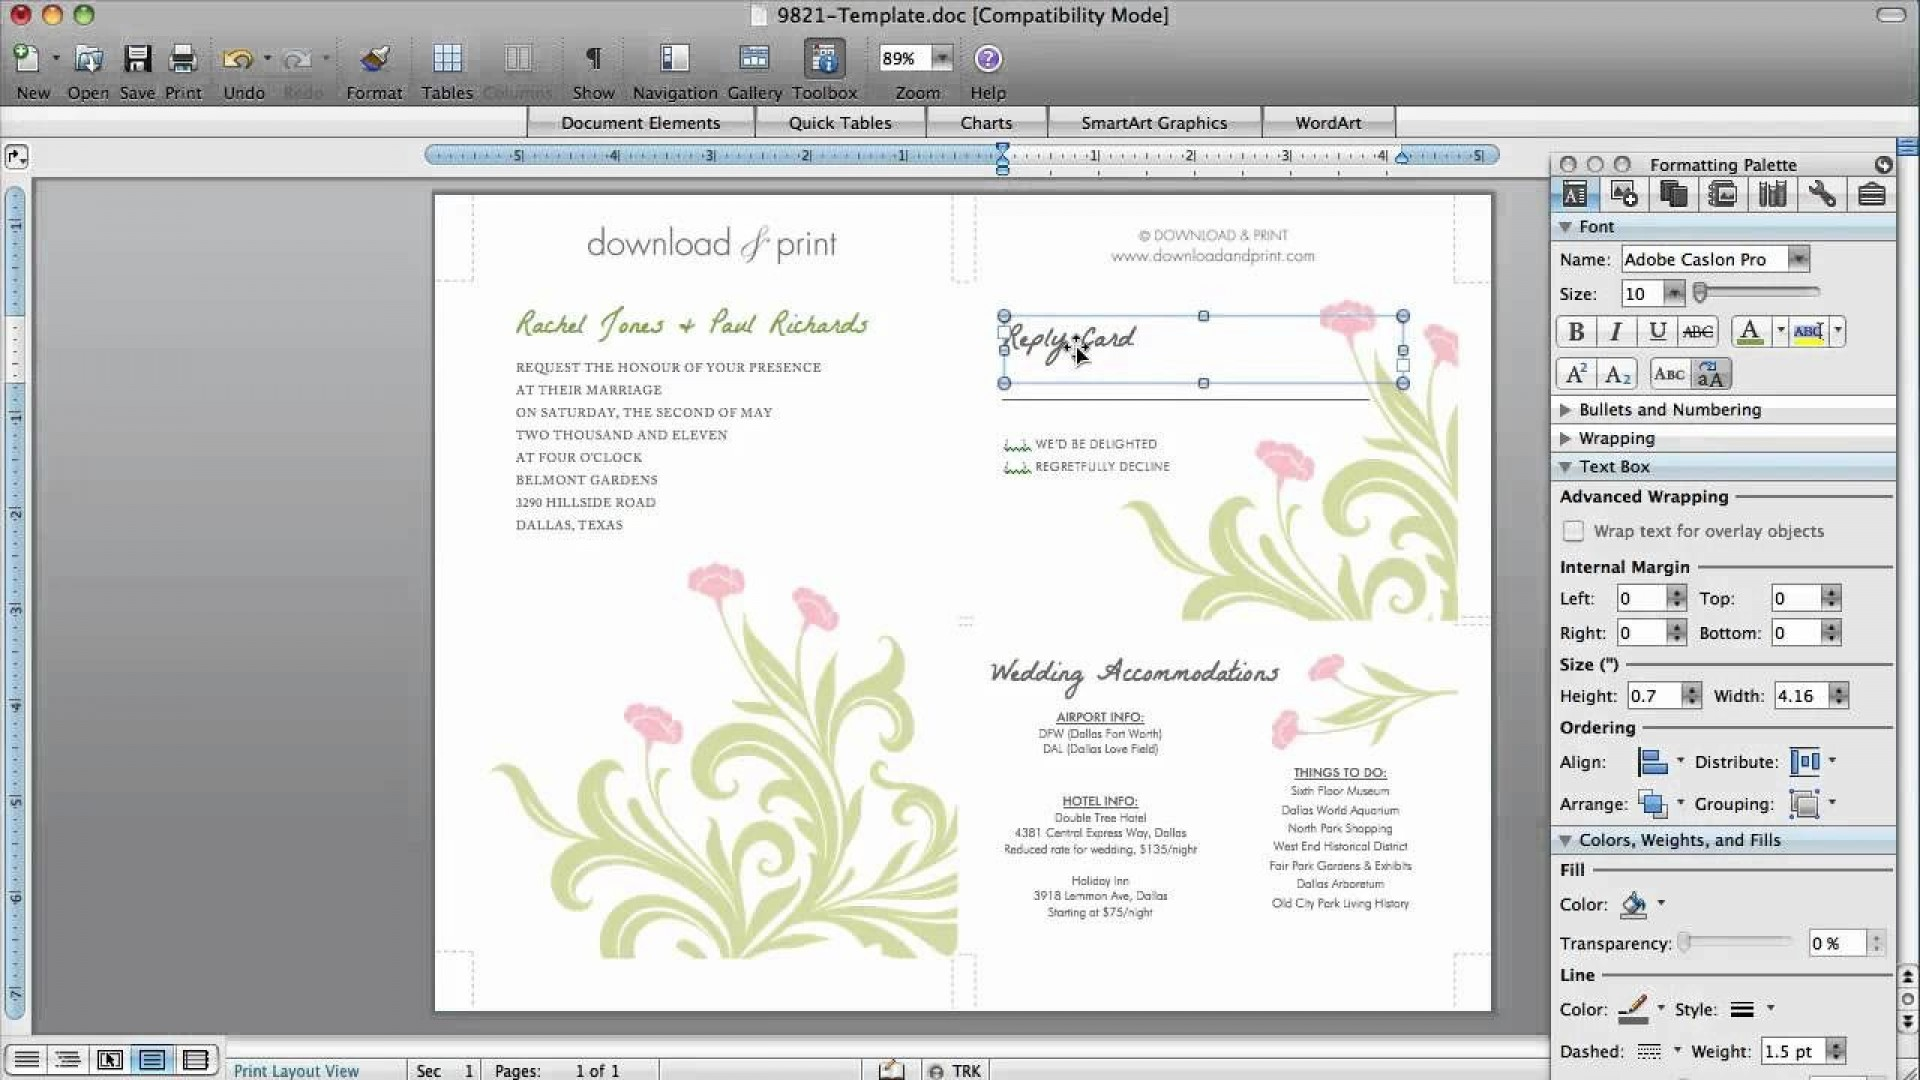 002 Phenomenal Microsoft Word 2020 Birthday Invitation Template Concept 1920